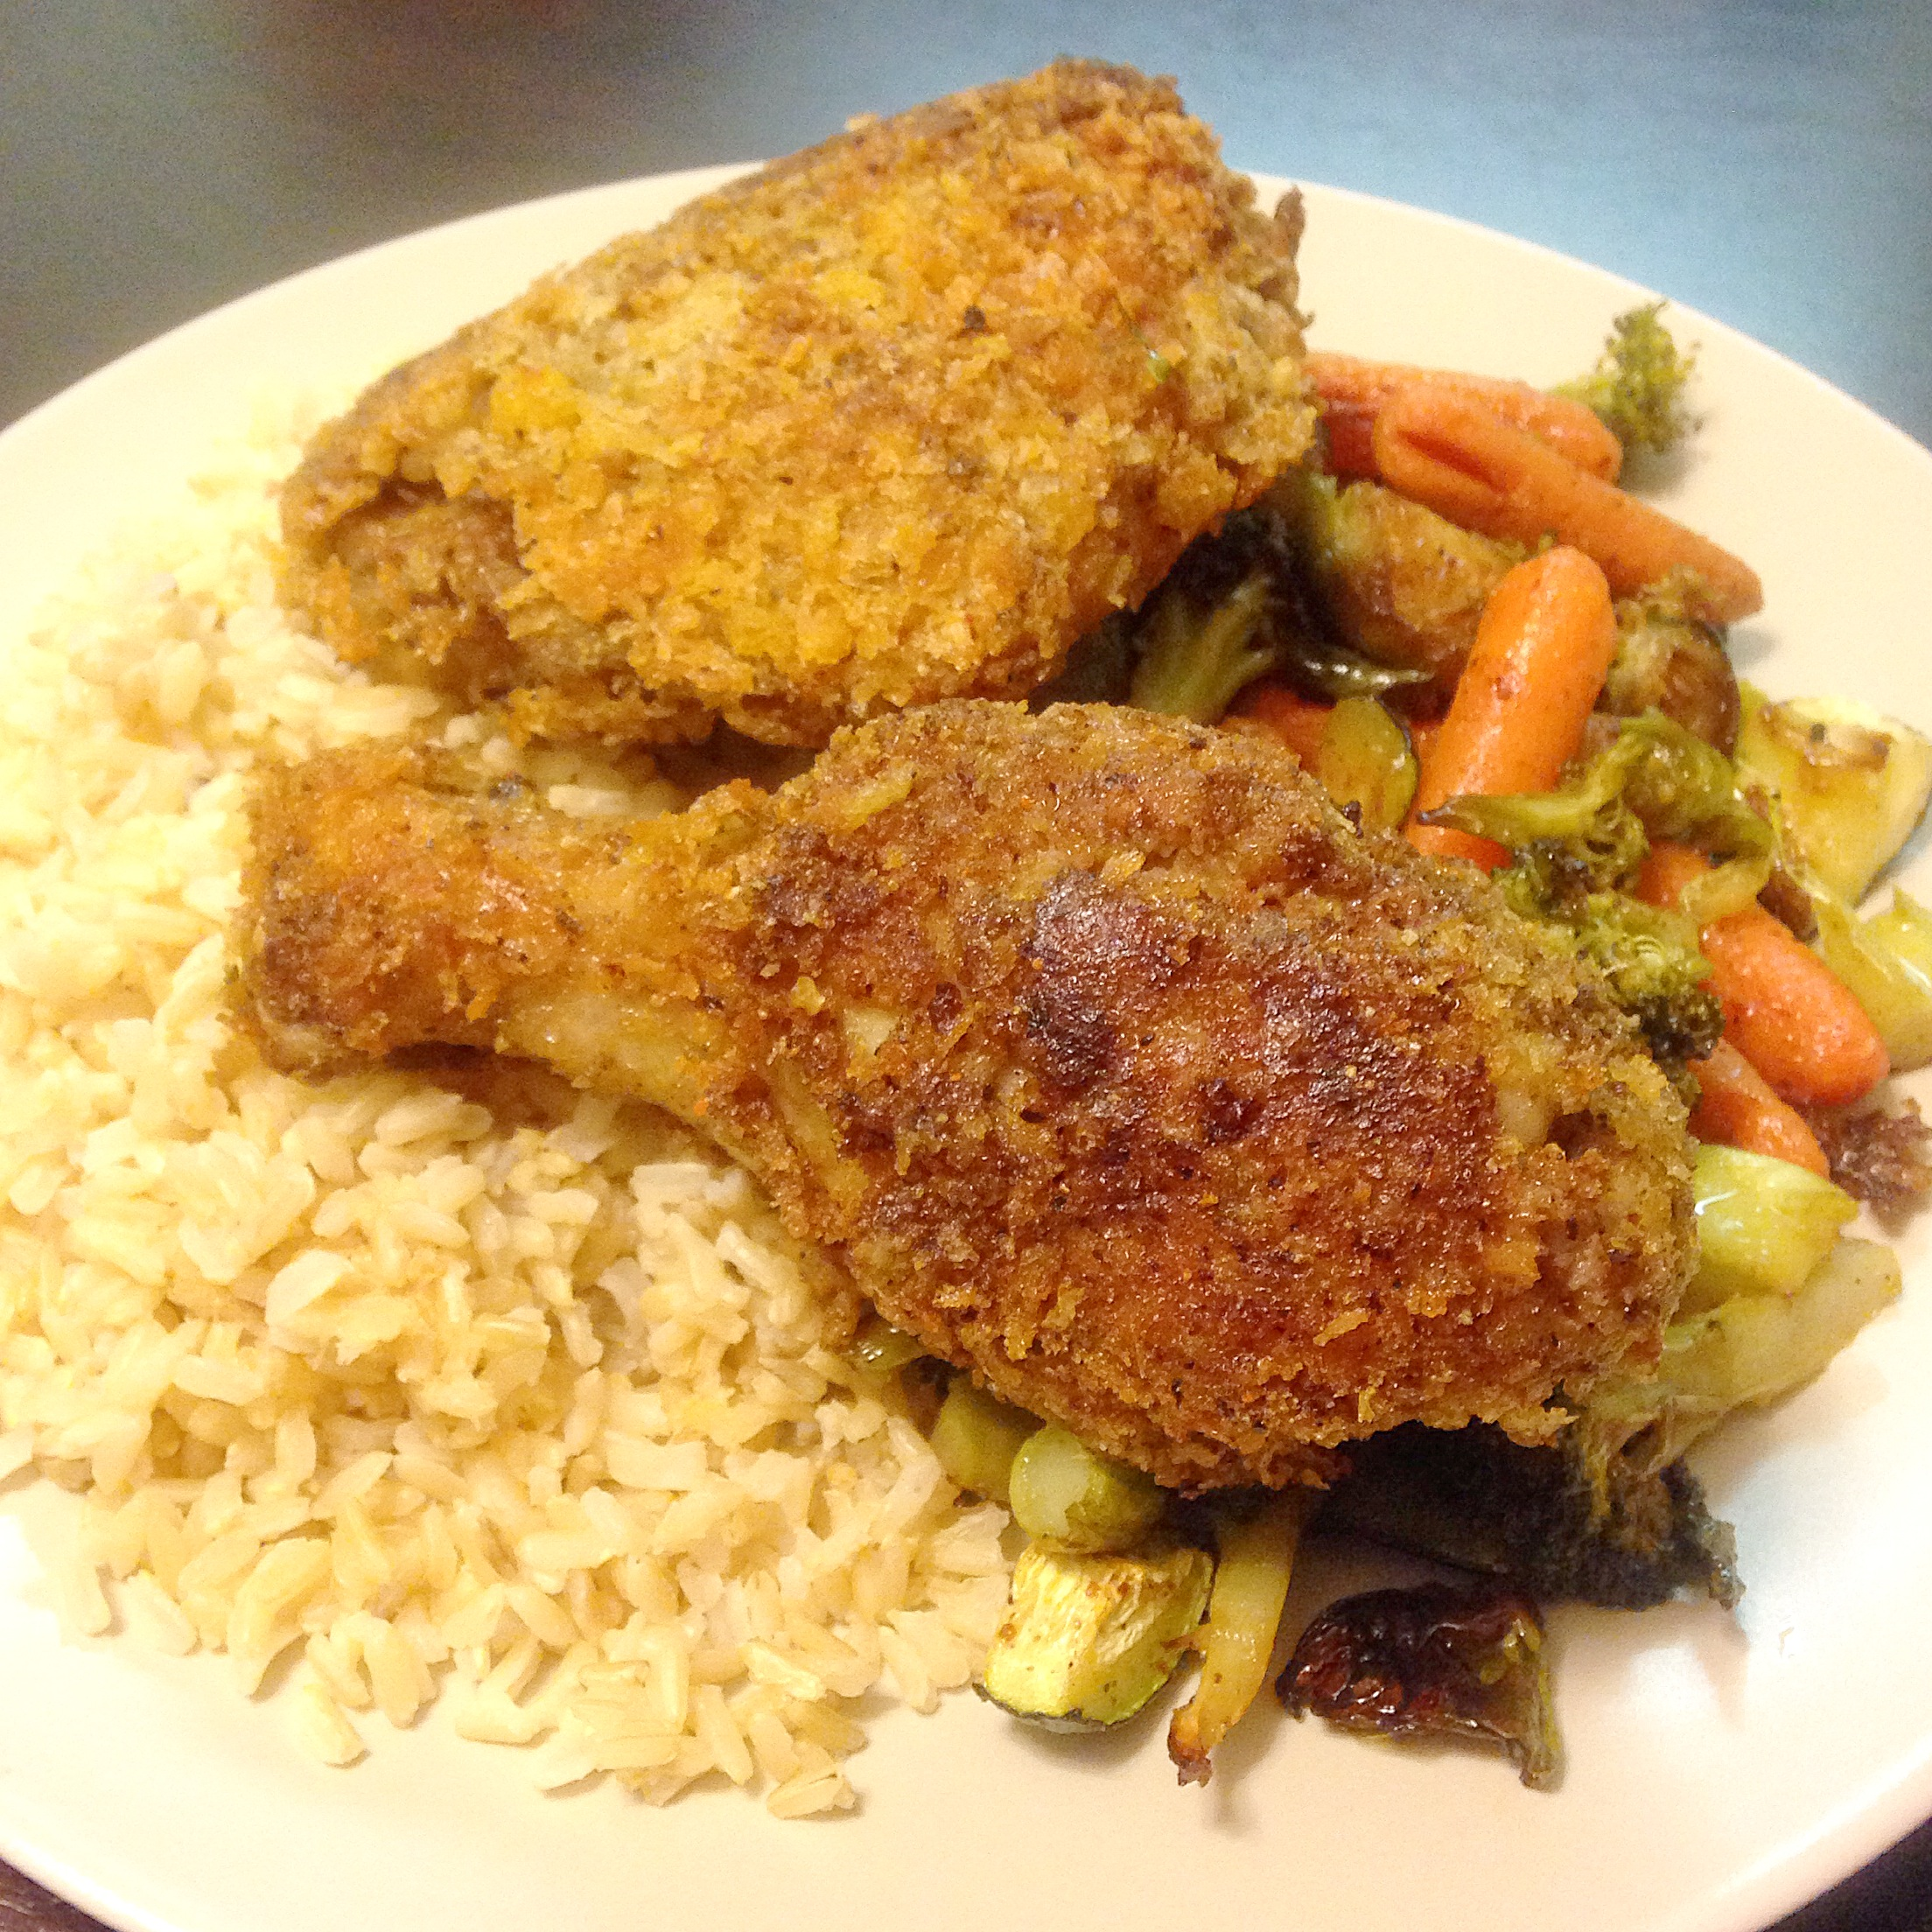 Fried Jamaican Jerk Chicken battered in Panko and Kix Cereal atop brown rice and roasted vegetables.